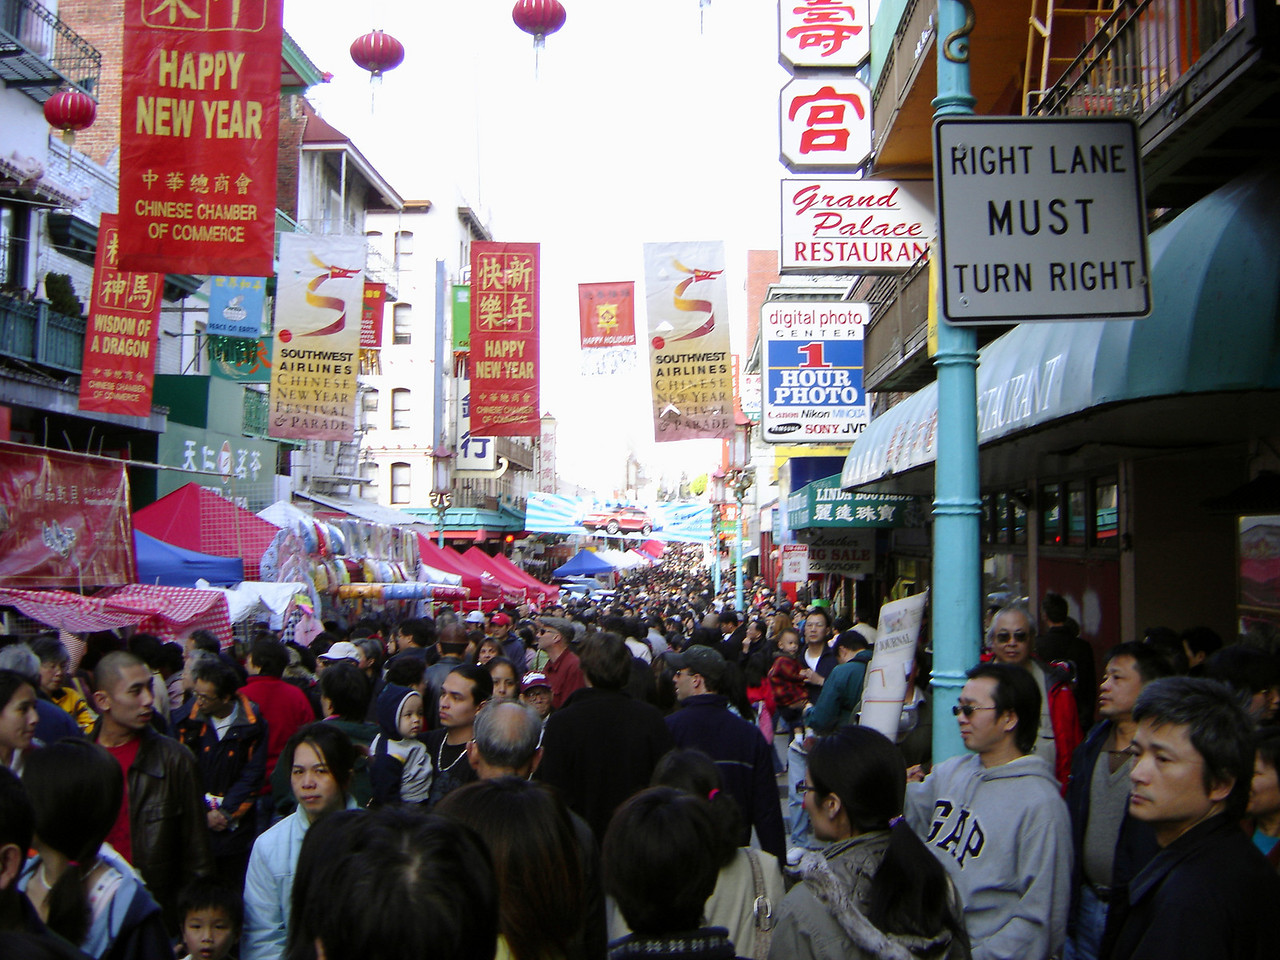 On our way back through Chinatown, we ran into this mob of people gathered for Chinese New Year, which I guess is on my birthday this year, which would explain why none of my Chinese friends will be attending my party! :P